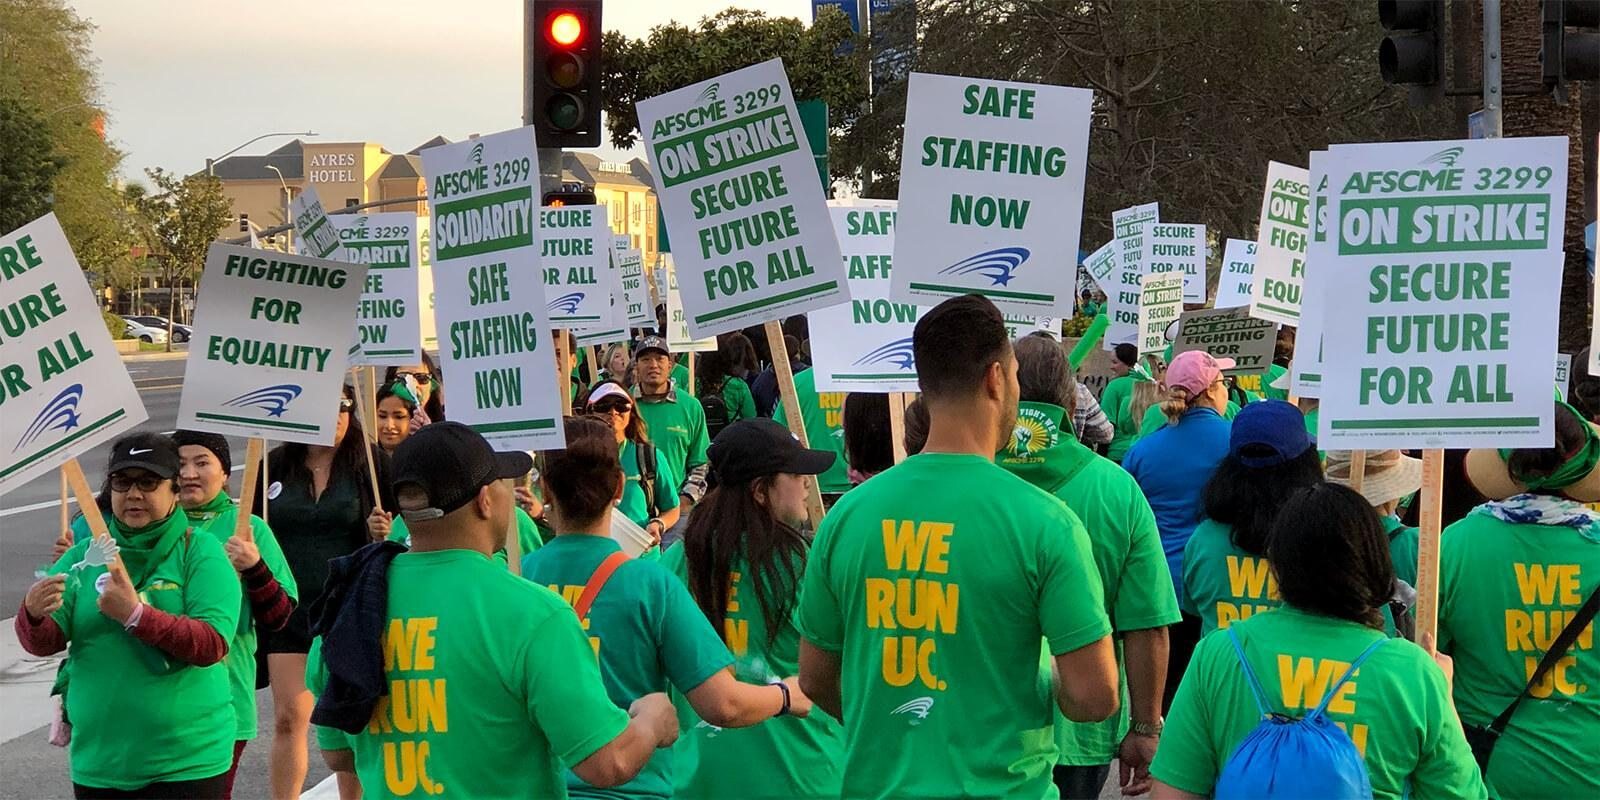 "AFSCME 3299 members on the picket line with signs that read, ""On Strike, Secure Future For All"" and ""Safe Staffing Now"""